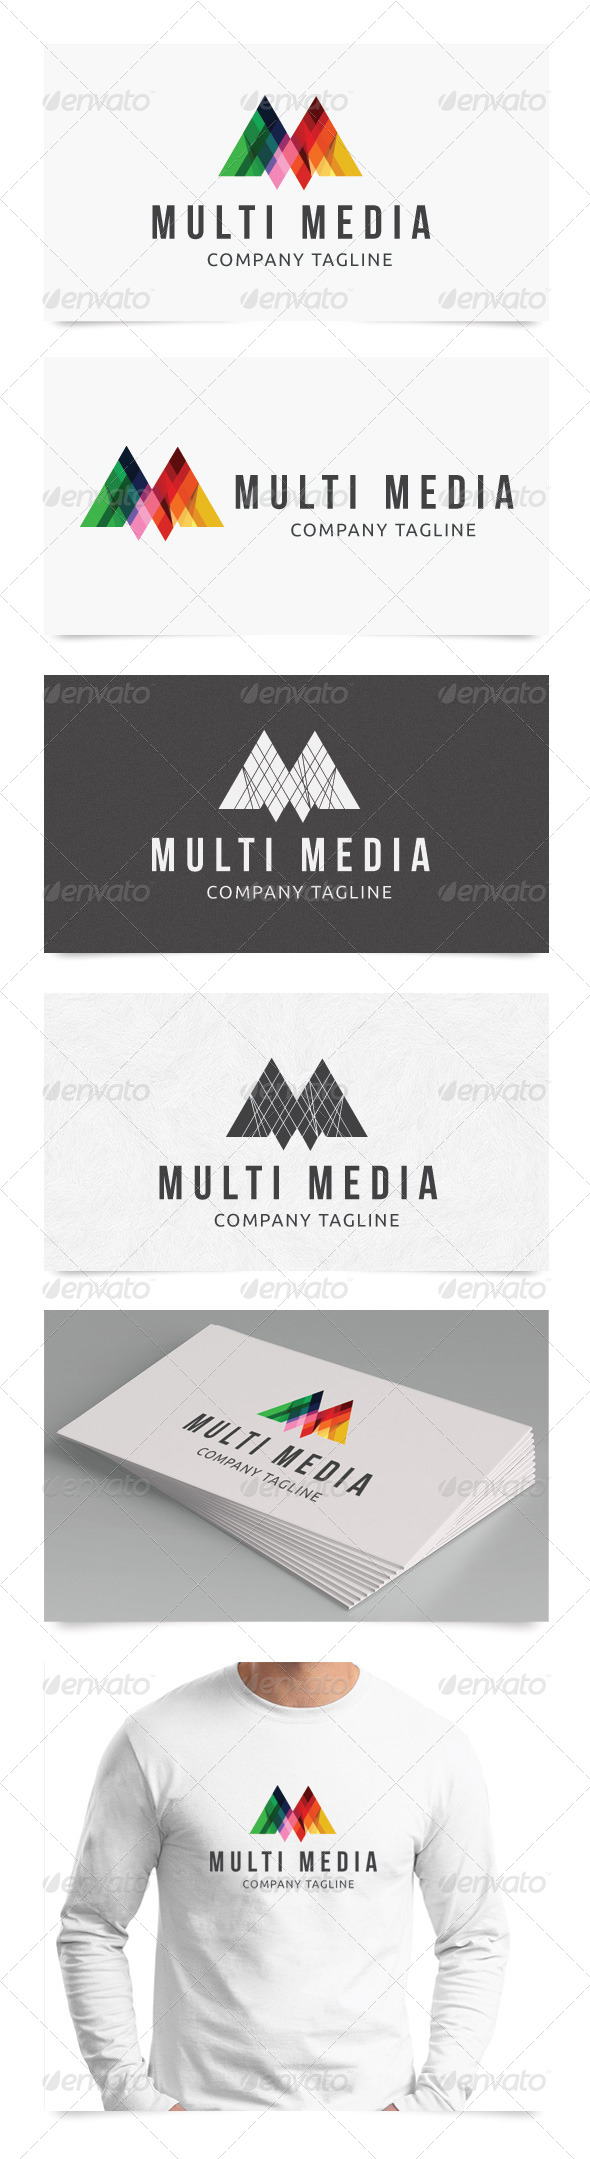 GraphicRiver Multi Media 4983419